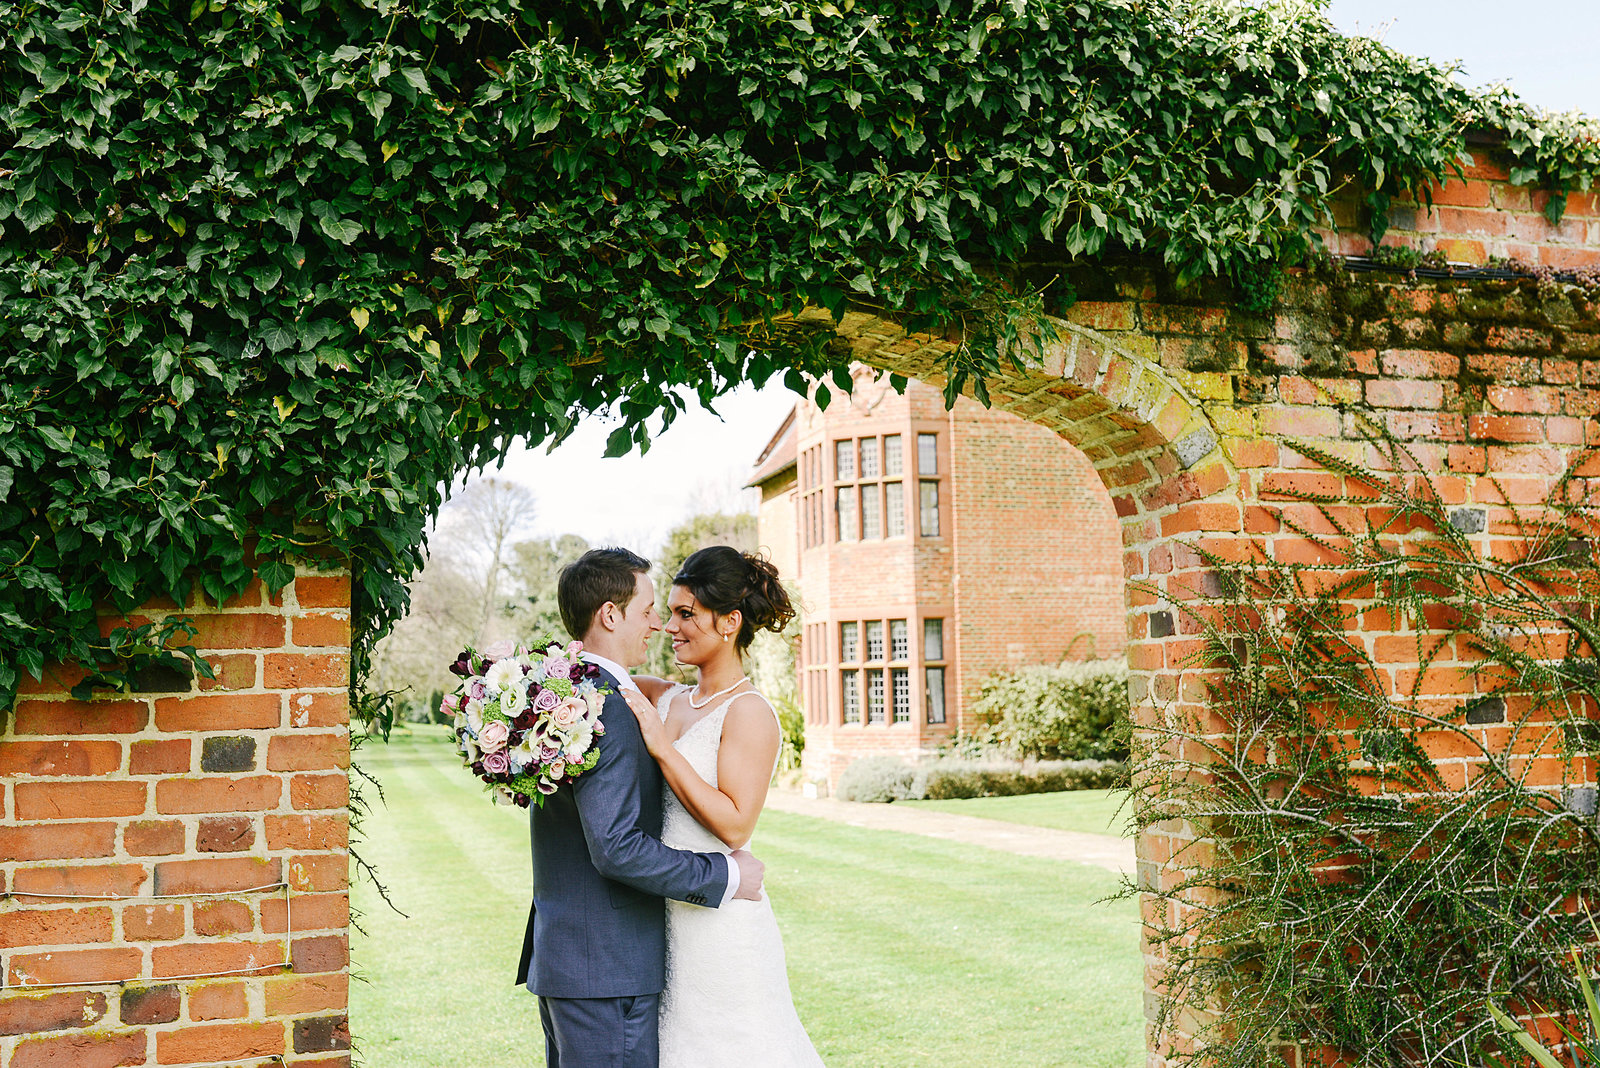 Yasmin & Roman Wedding - 31st March 2015-220